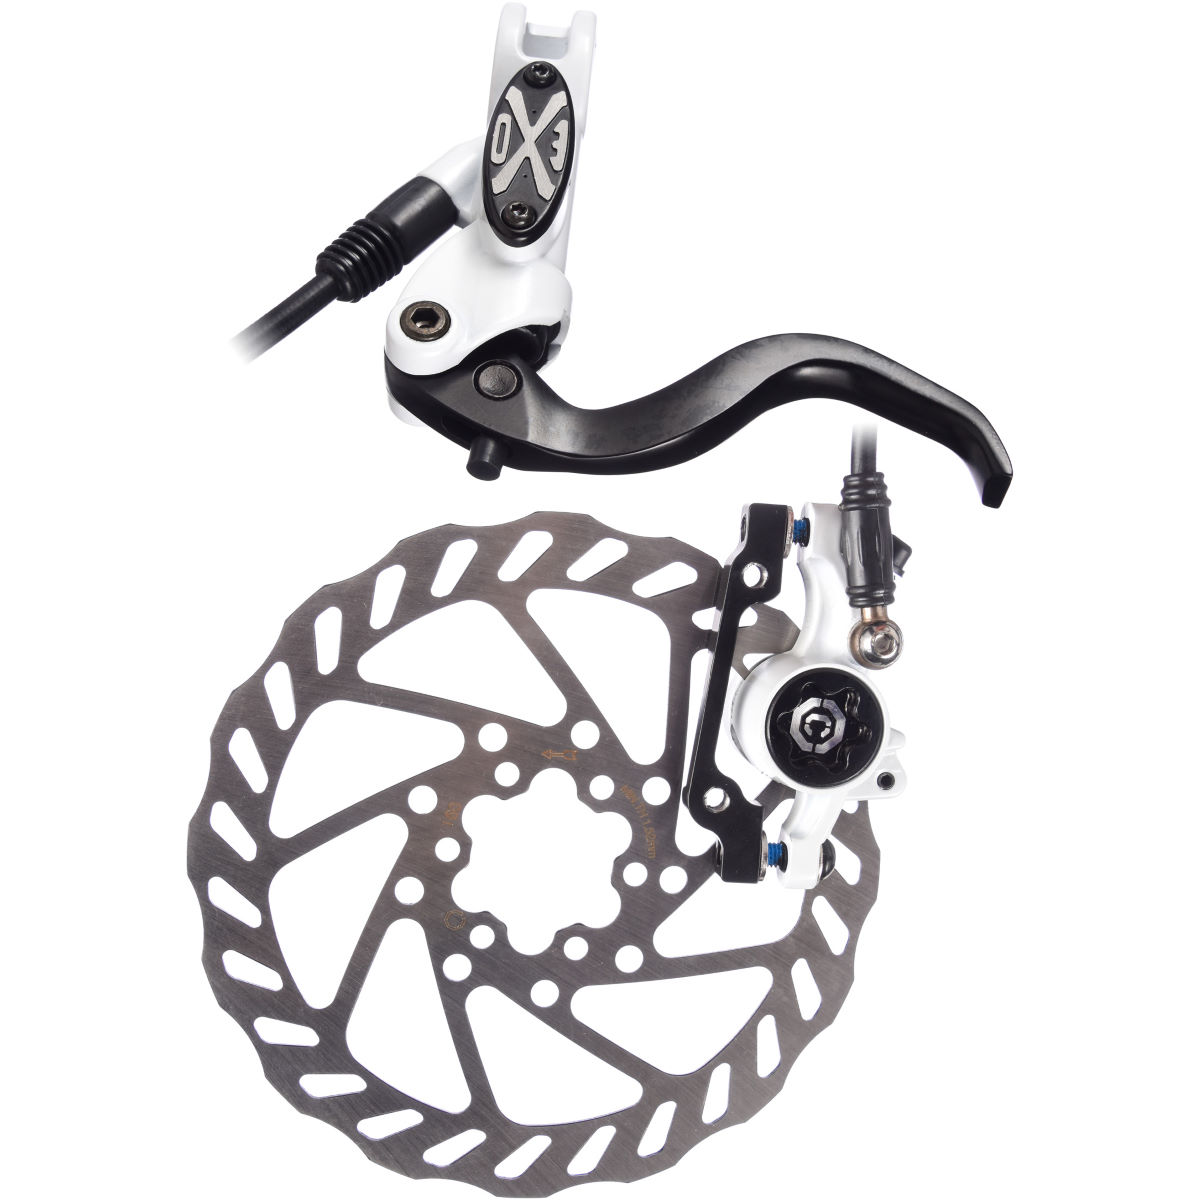 Clarks Exo Hydraulic Disc Brake Set - Pinzas para frenos de disco